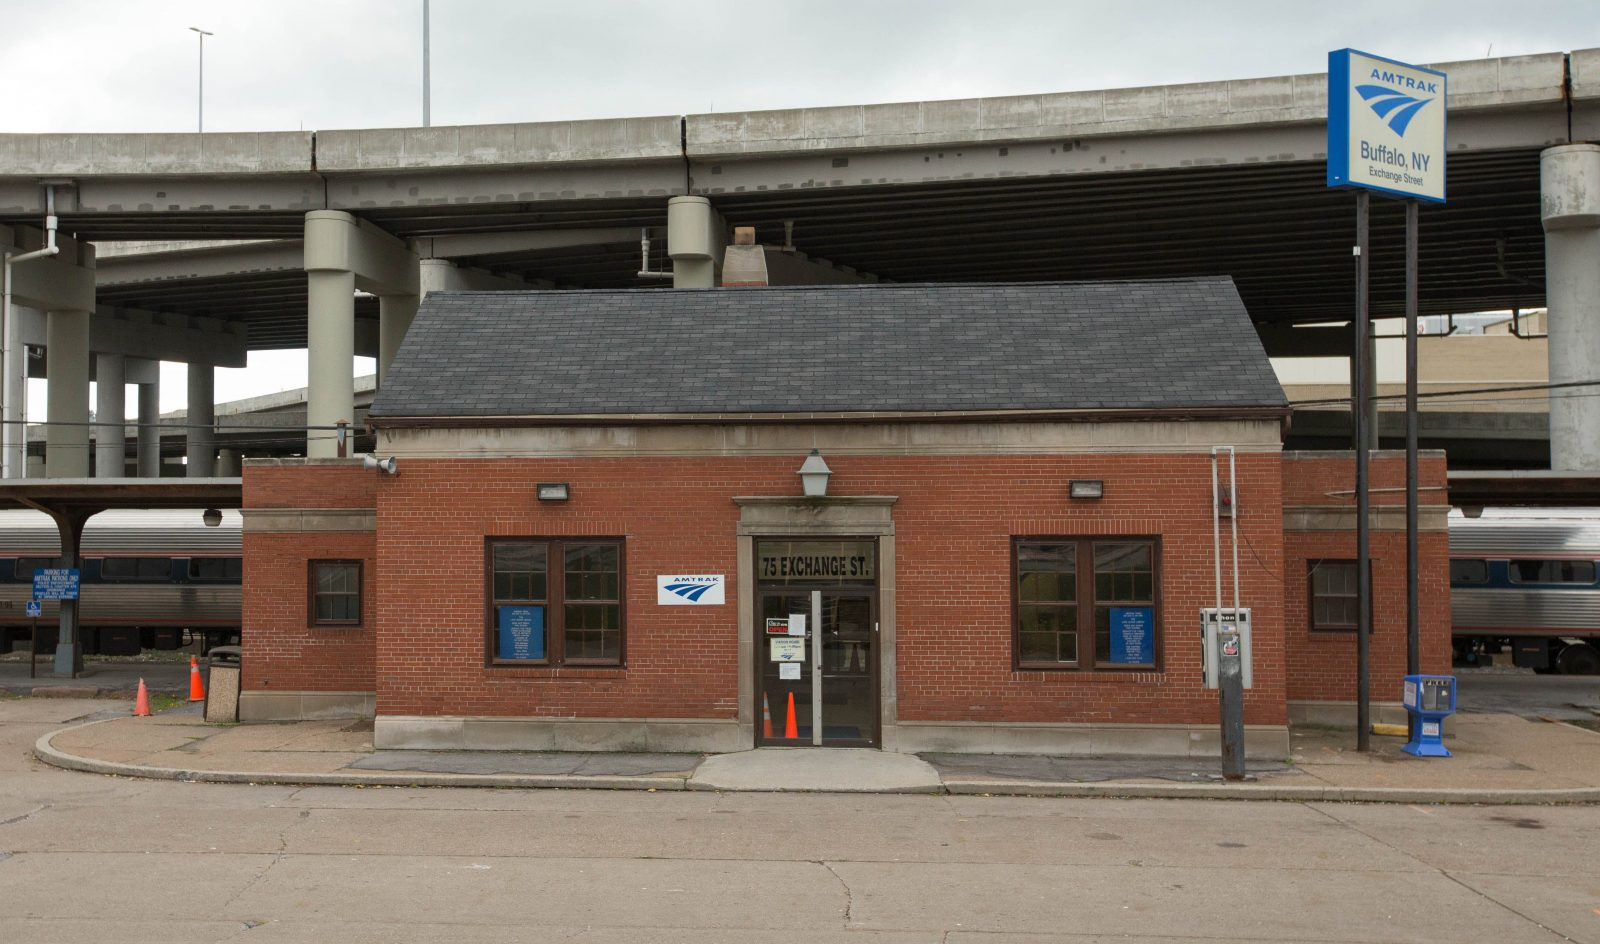 The tiny Amtrak Station on Exchange Street is finally about to be replaced. (Derek Gee/Buffalo News file photo)